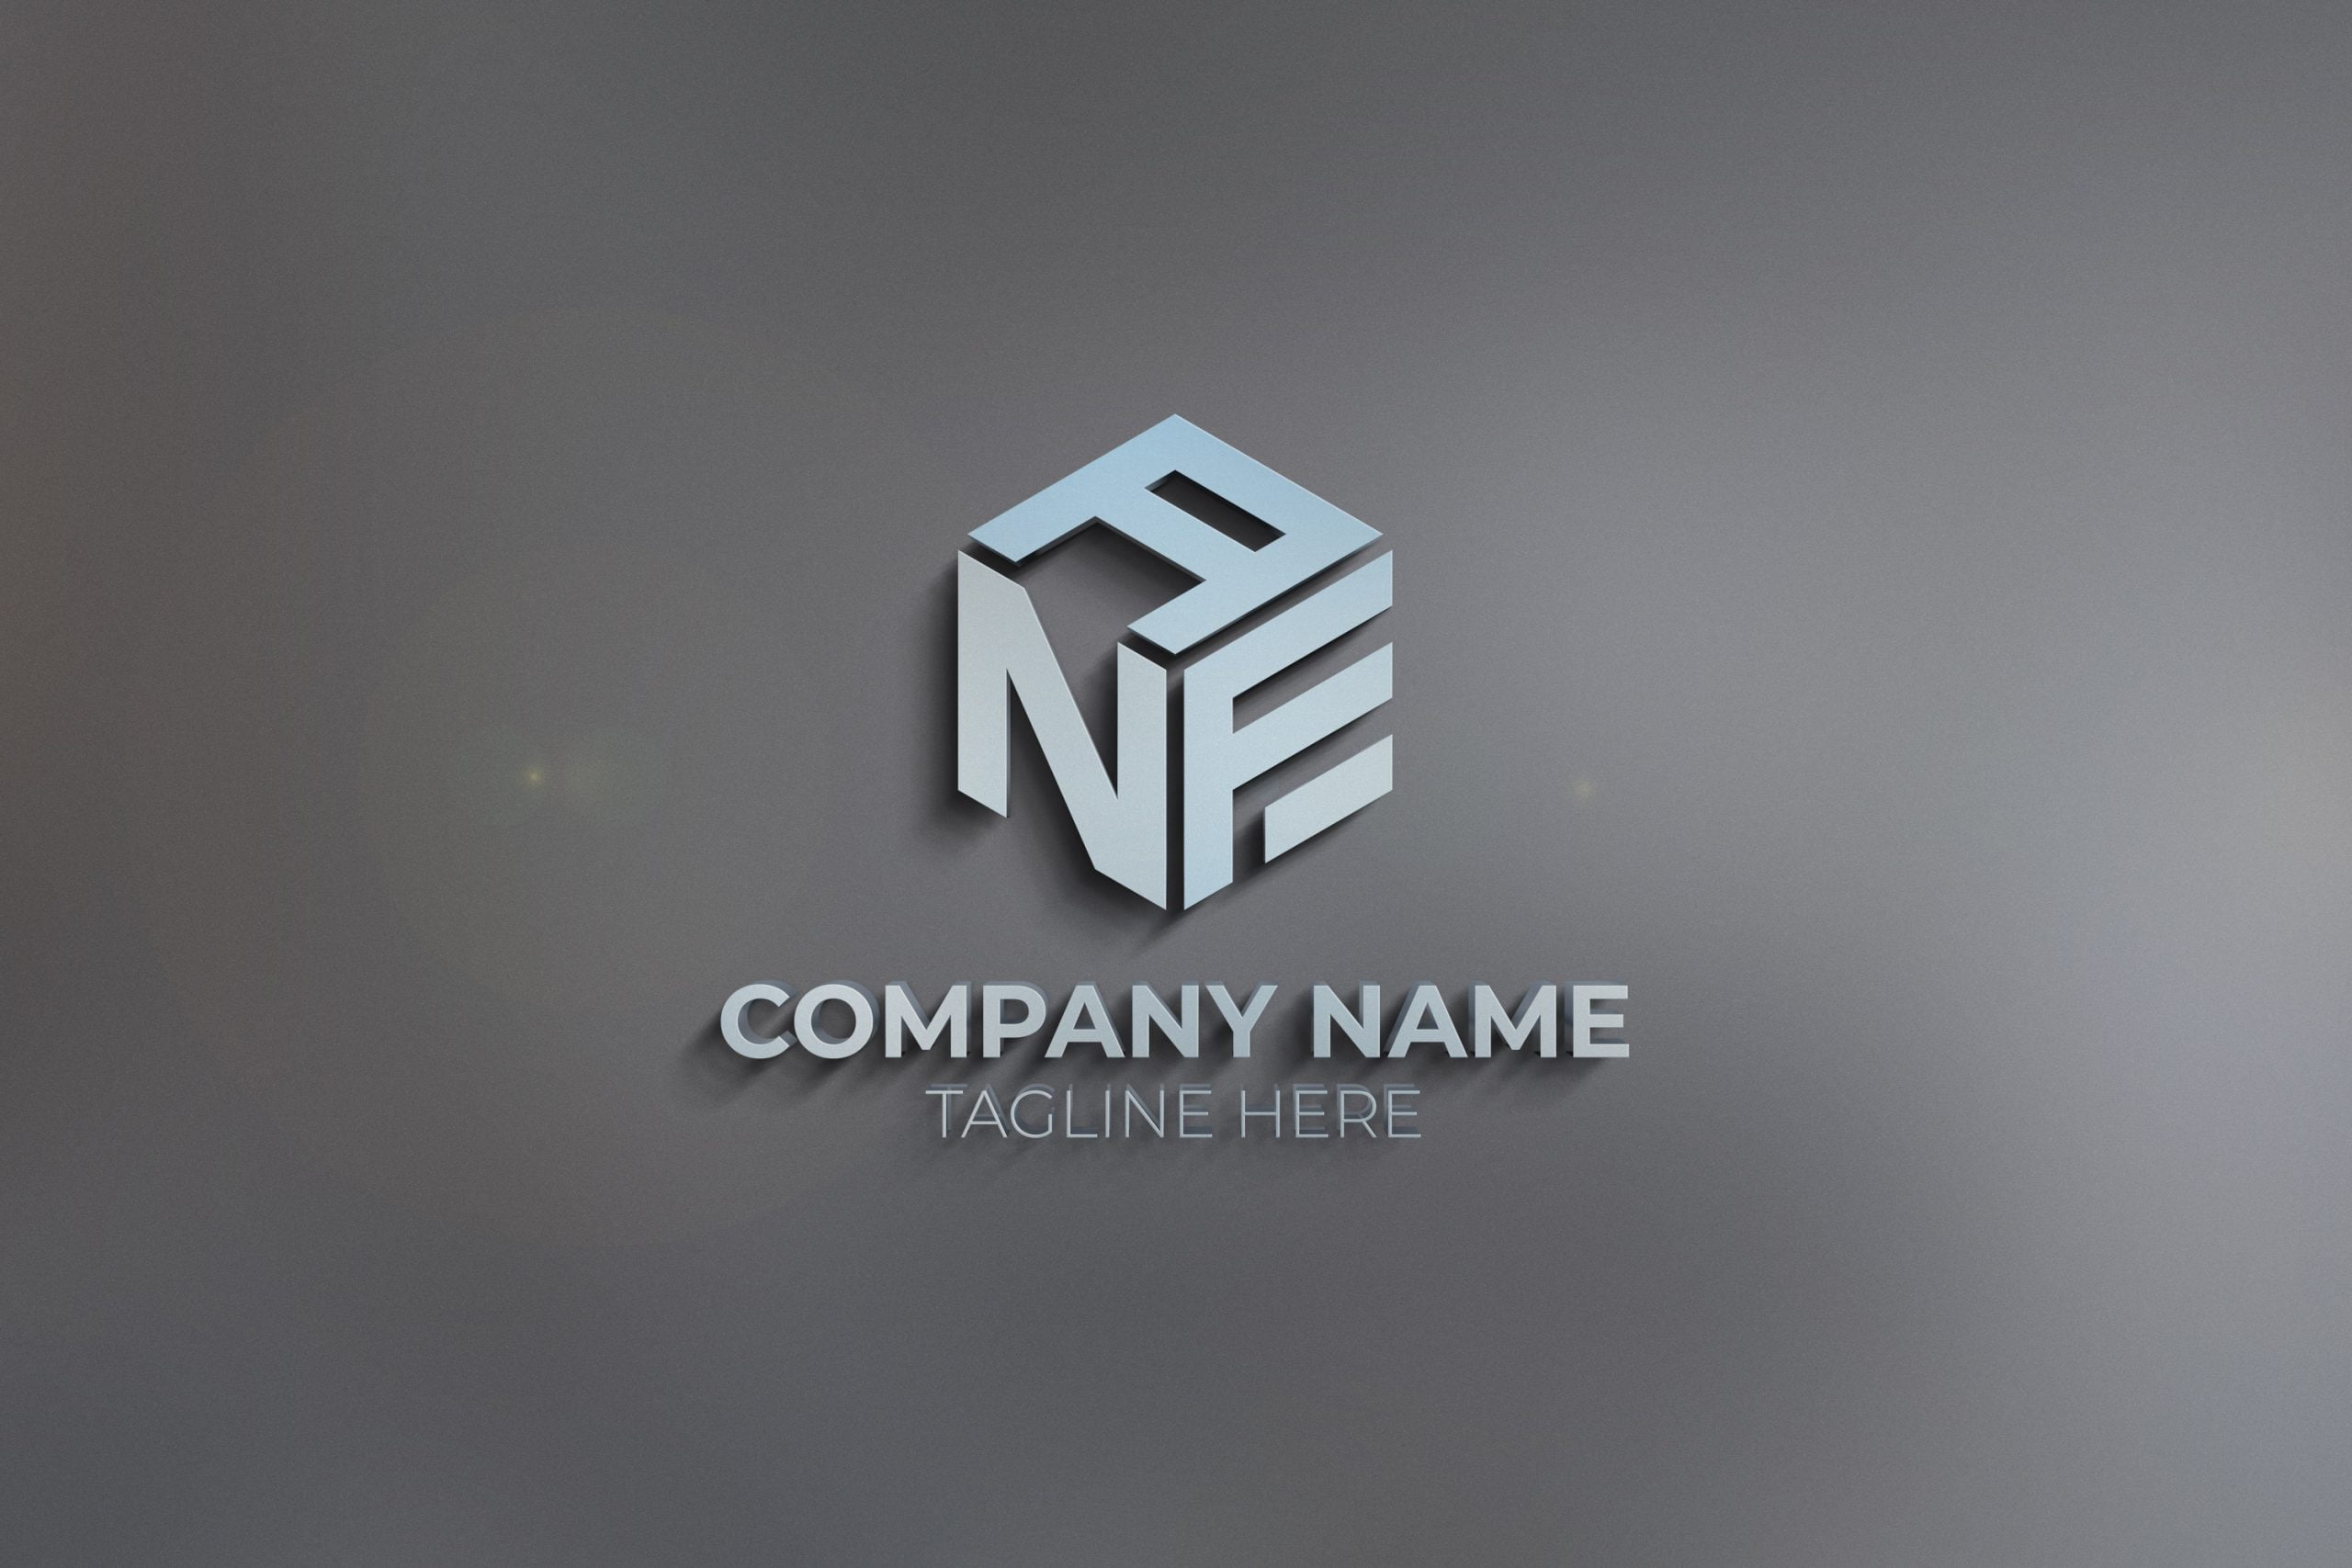 FREE ANF LETTER ON WALL PRESENTATION